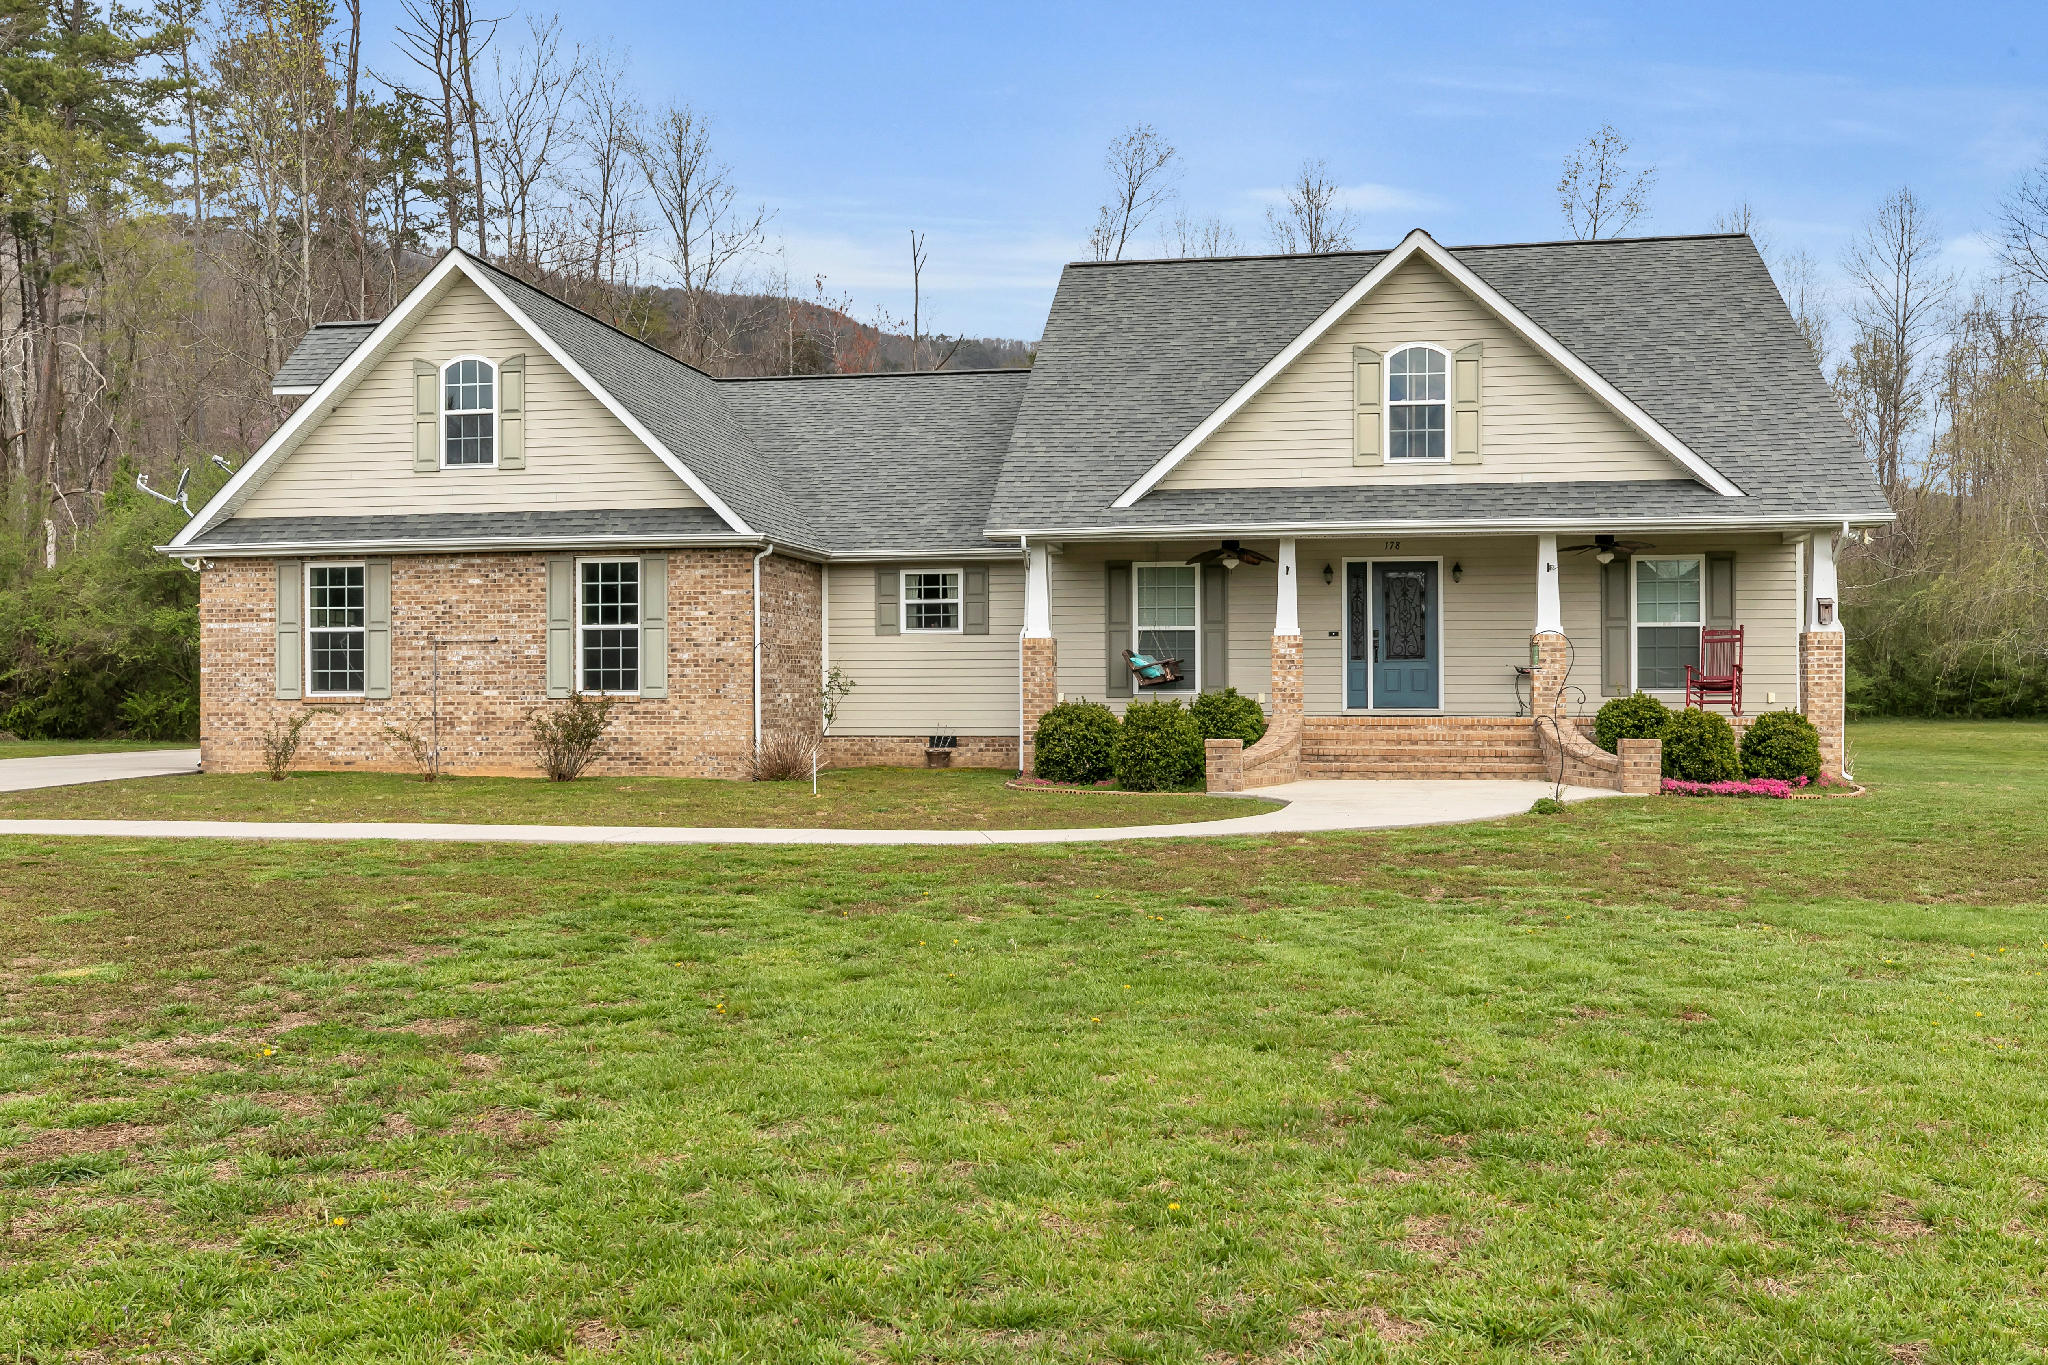 178 Hidden Meadow, Dunlap, TN 37327